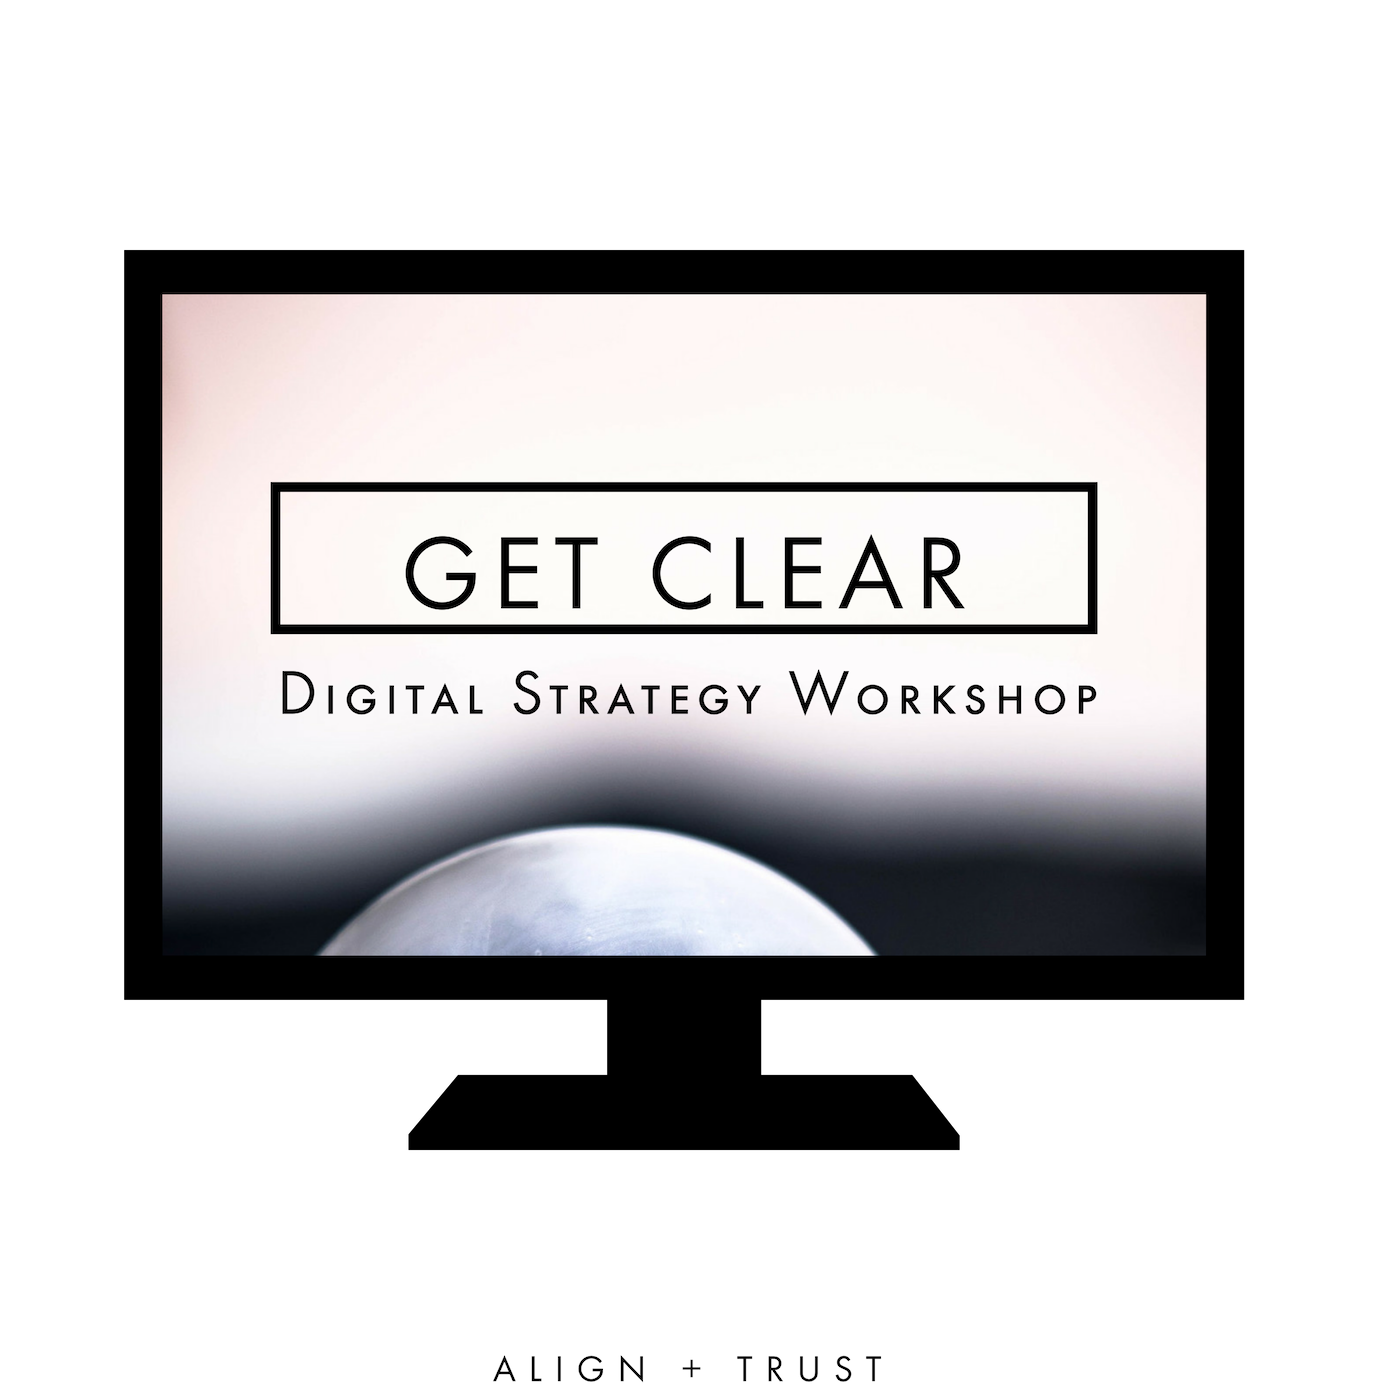 get+clear+digitial+strategy+workshop-2.png